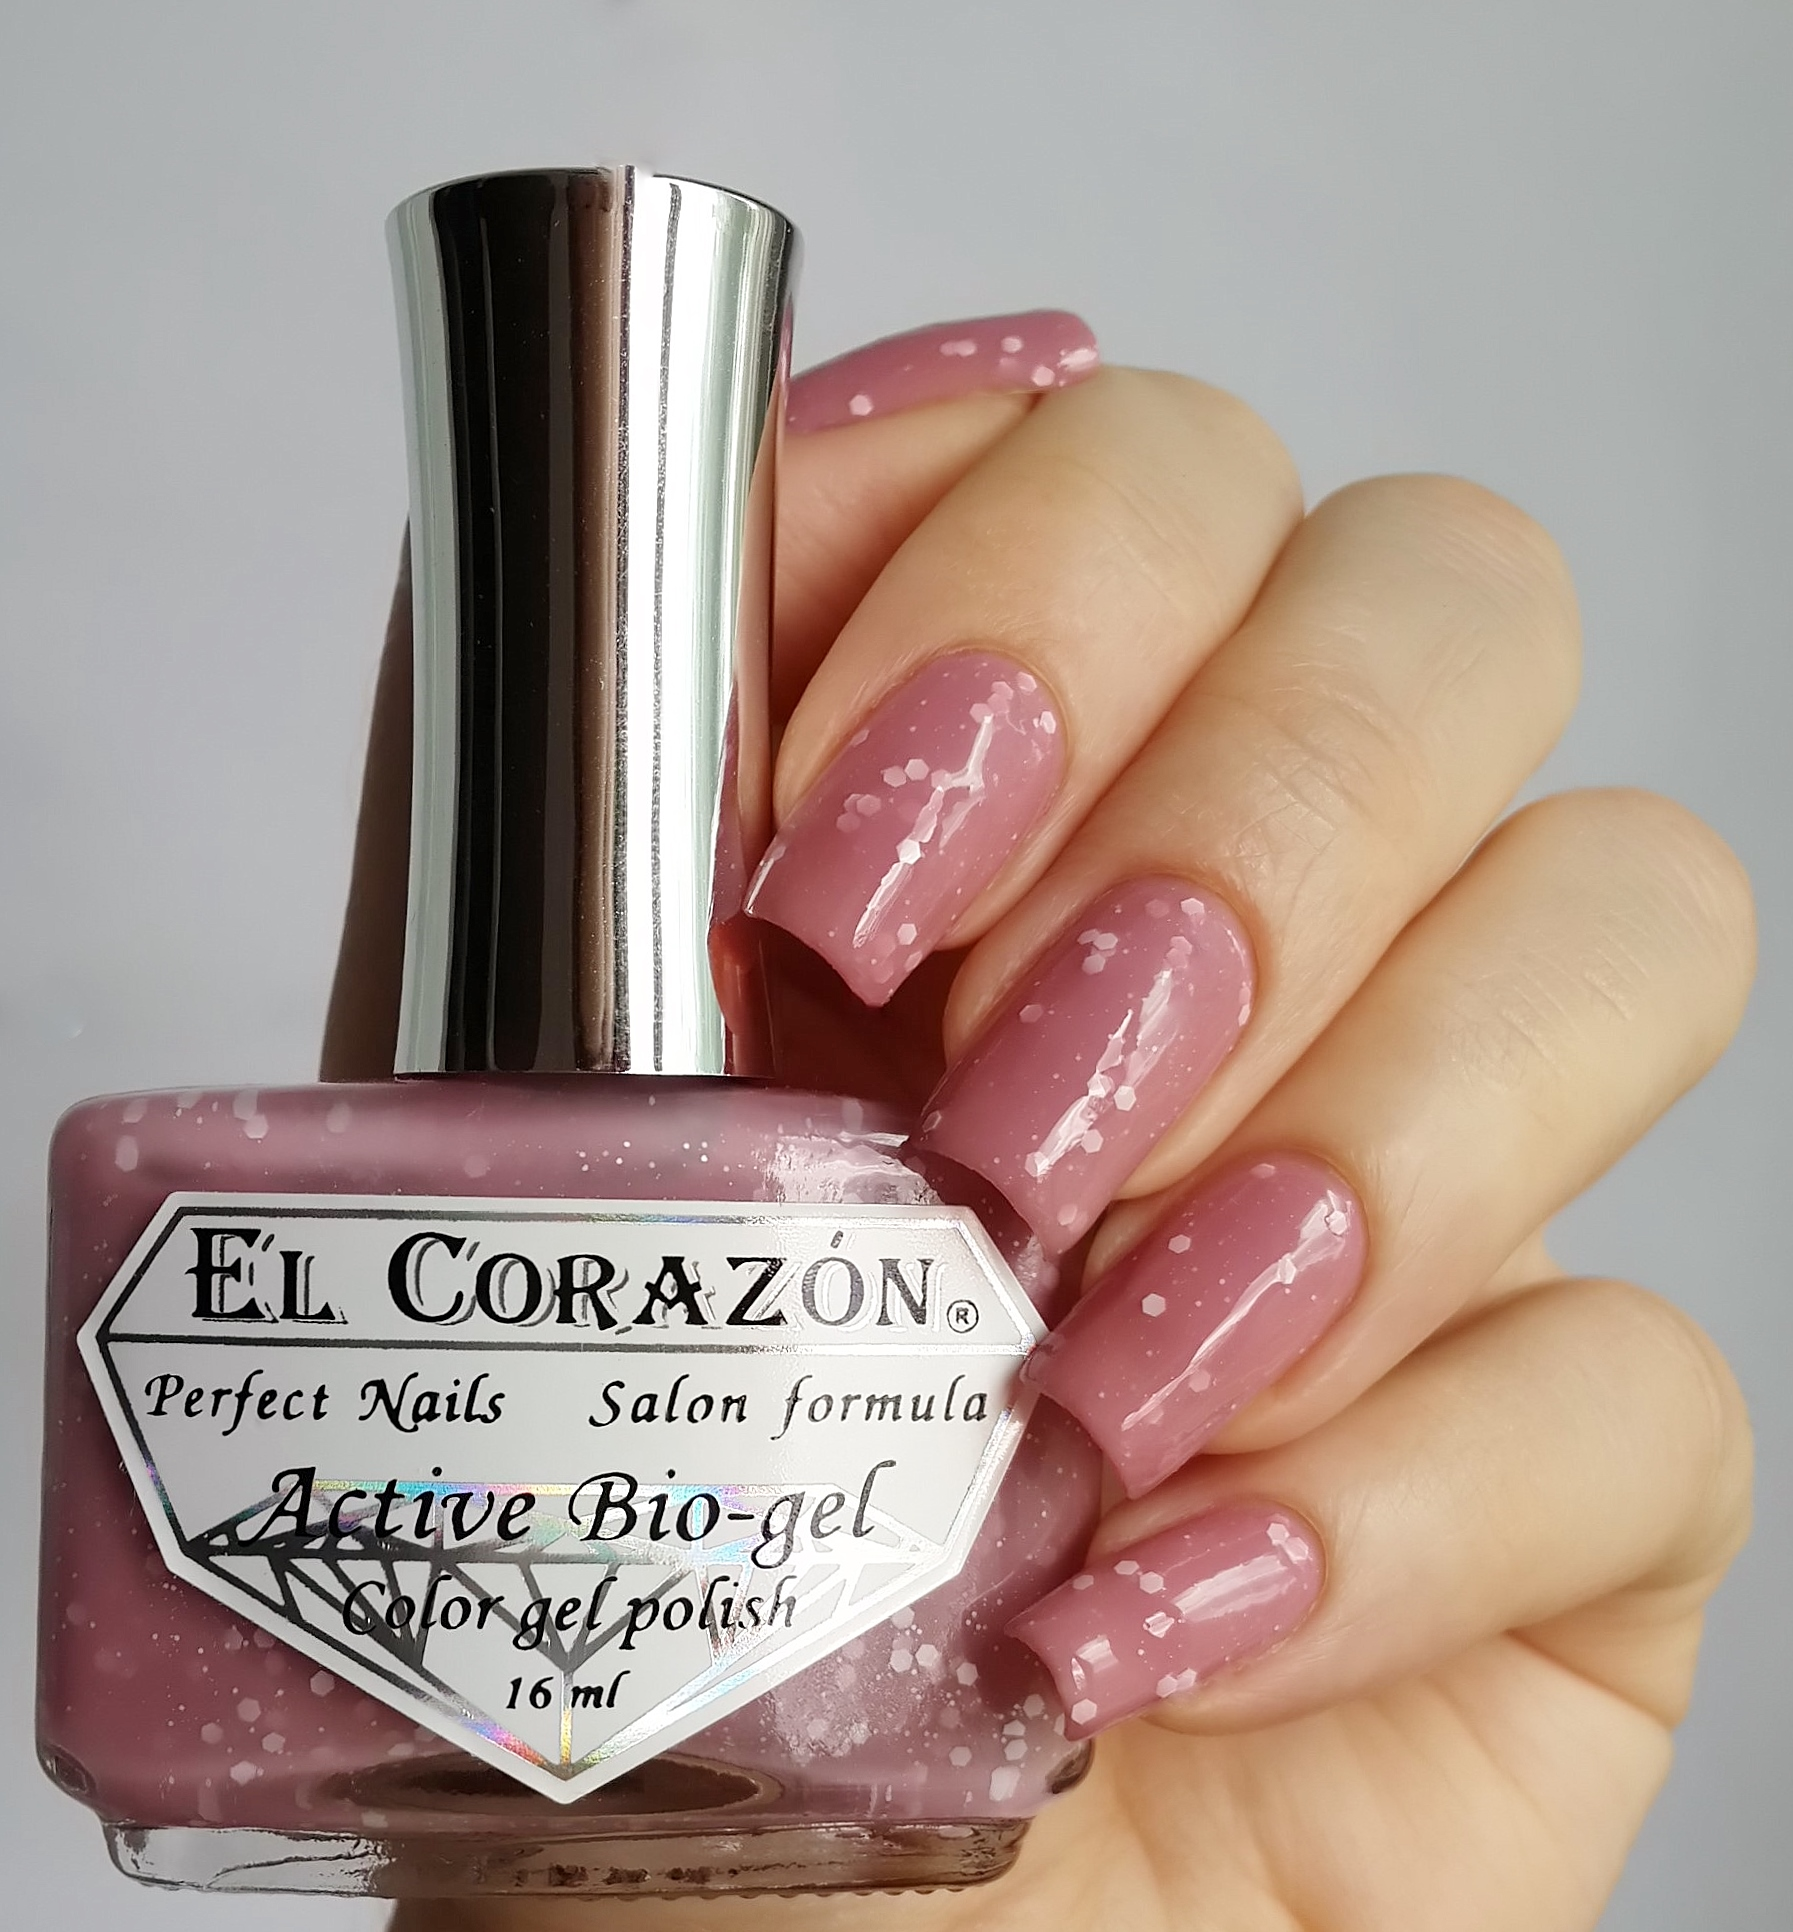 EL Corazon Active Bio-gel Color gel polish Fashion girl on a premiere №423/207